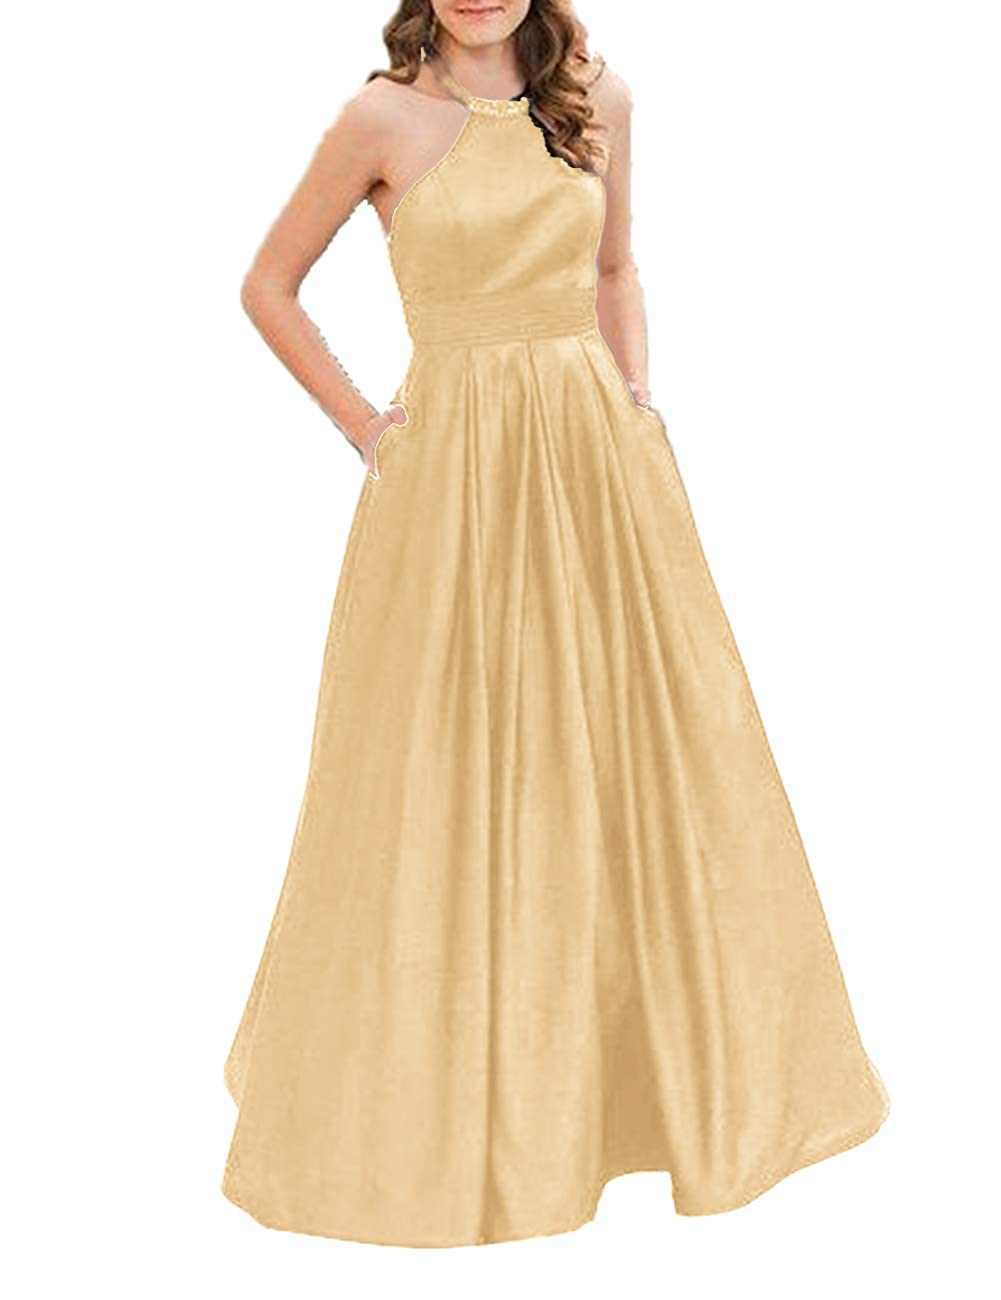 Champagne JAEDEN Prom Dress Long Evening Dresses for Women Formal Evening Gowns Halter Prom Dress 2019